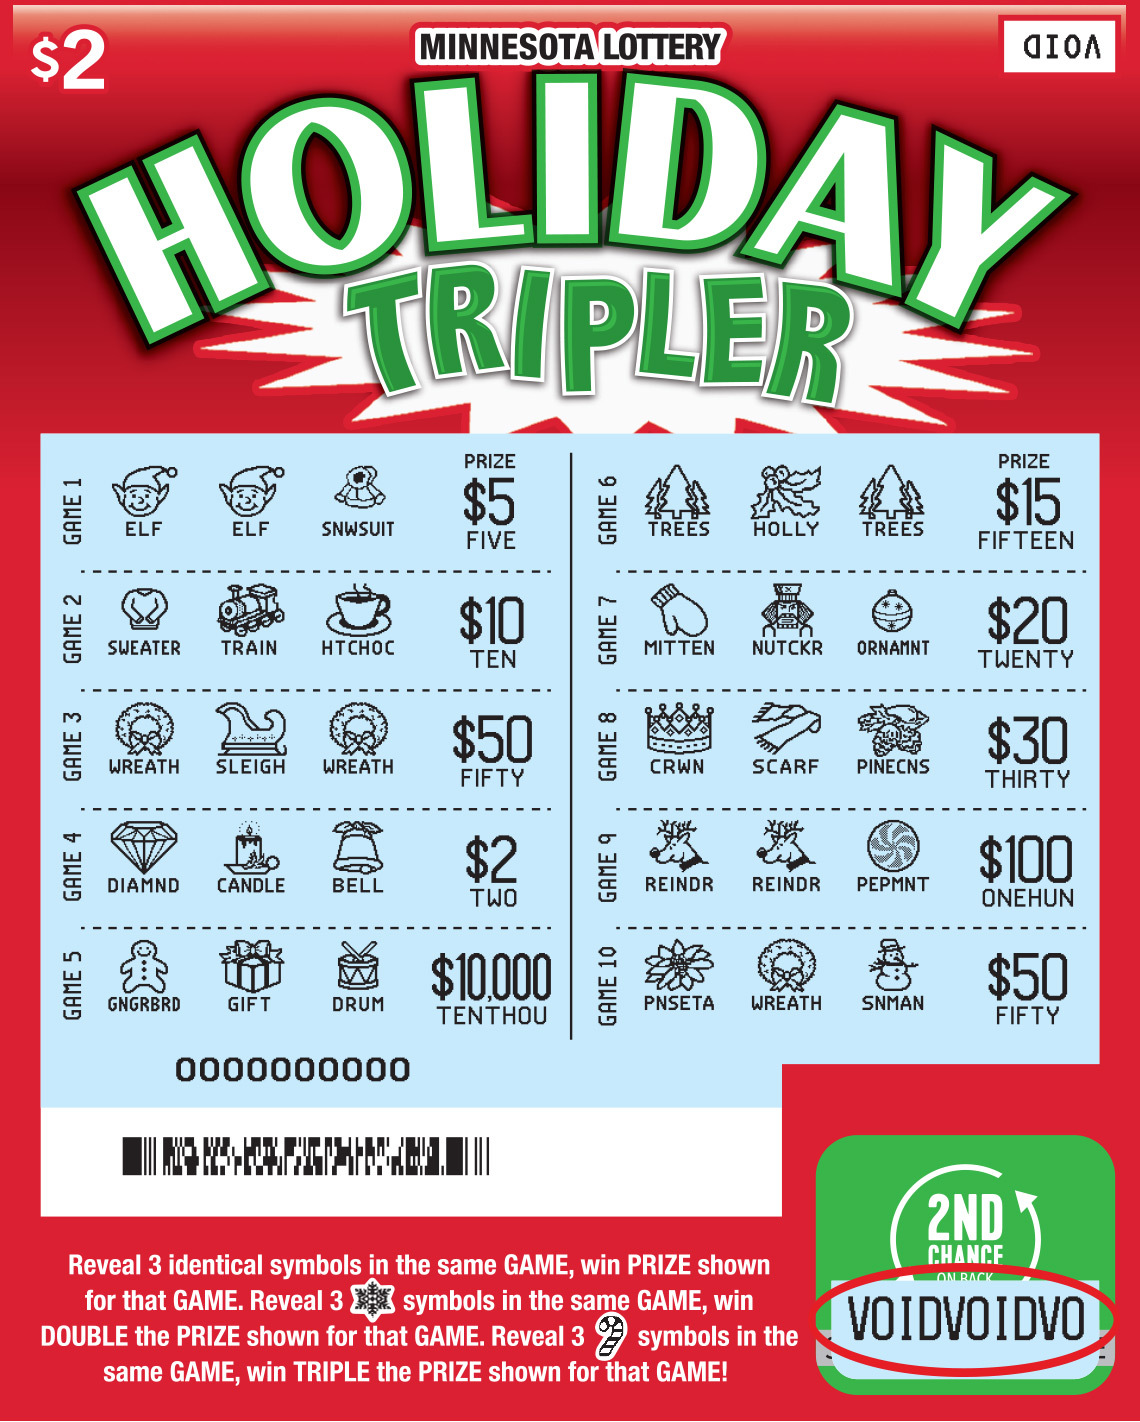 Holiday Tripler Val MN Lottery 1